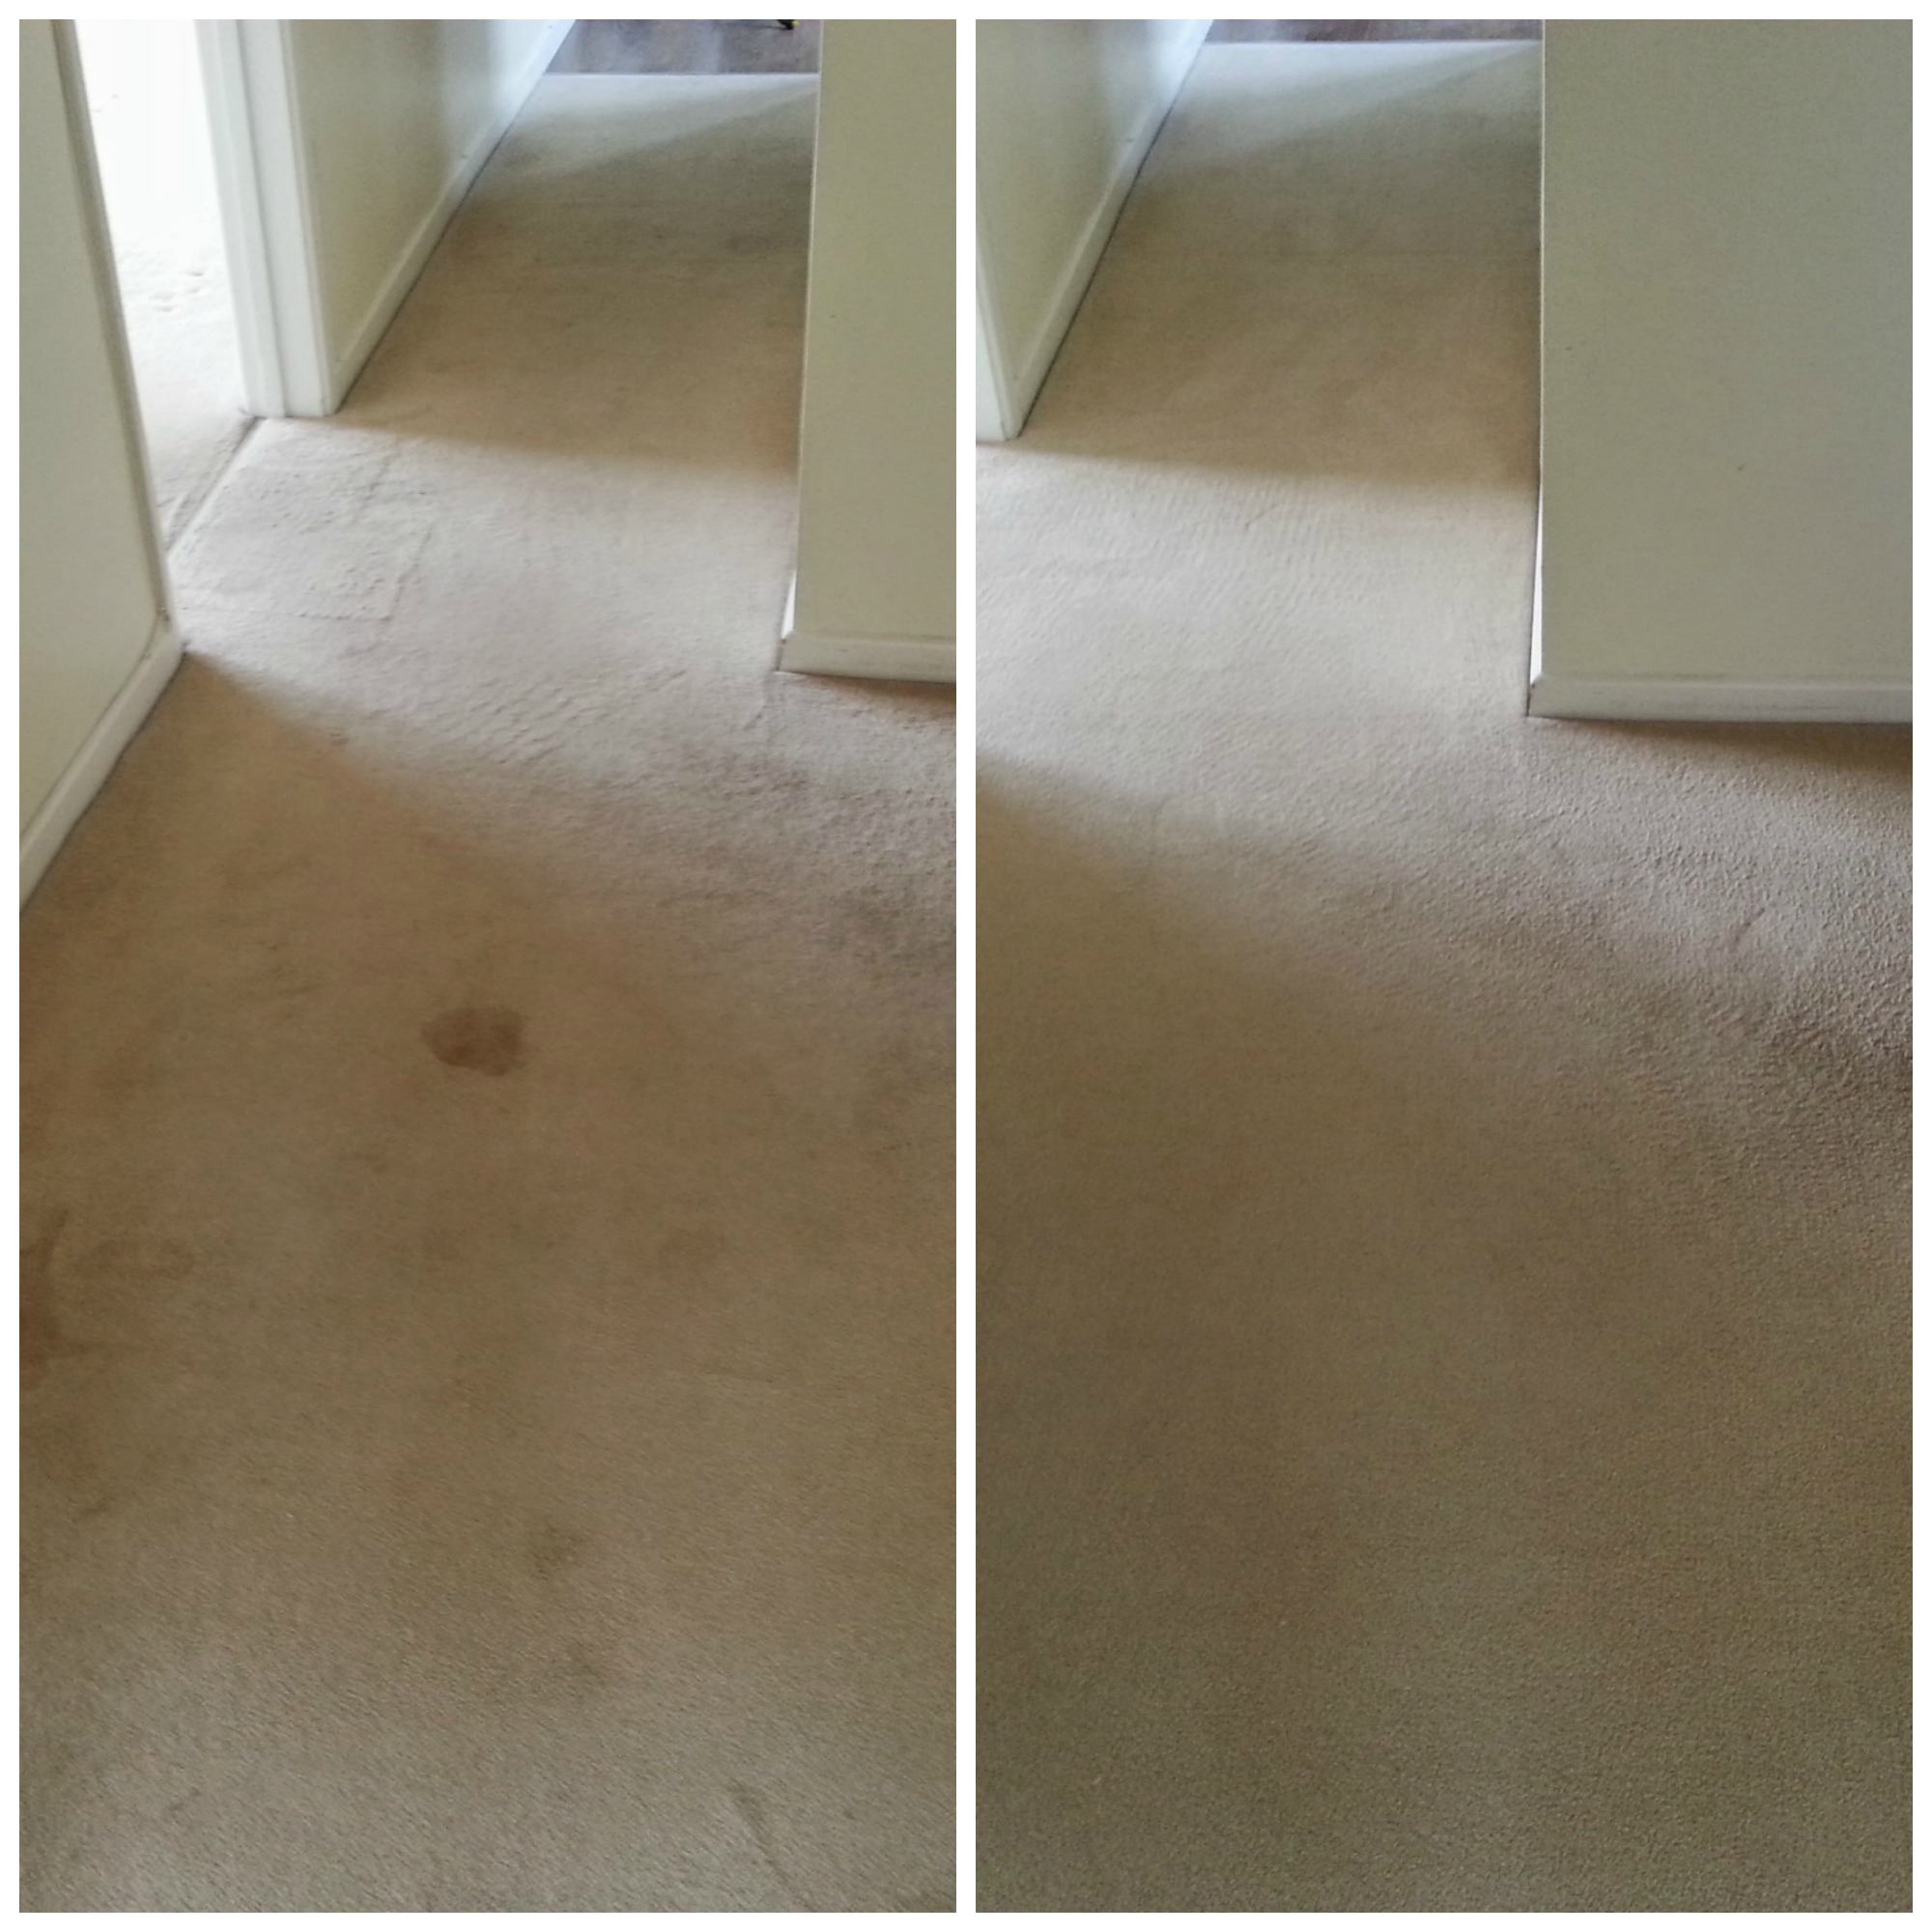 Professional Carpet Cleaning in Hertfordshire from www.fivestarfurnishingcare.co.uk